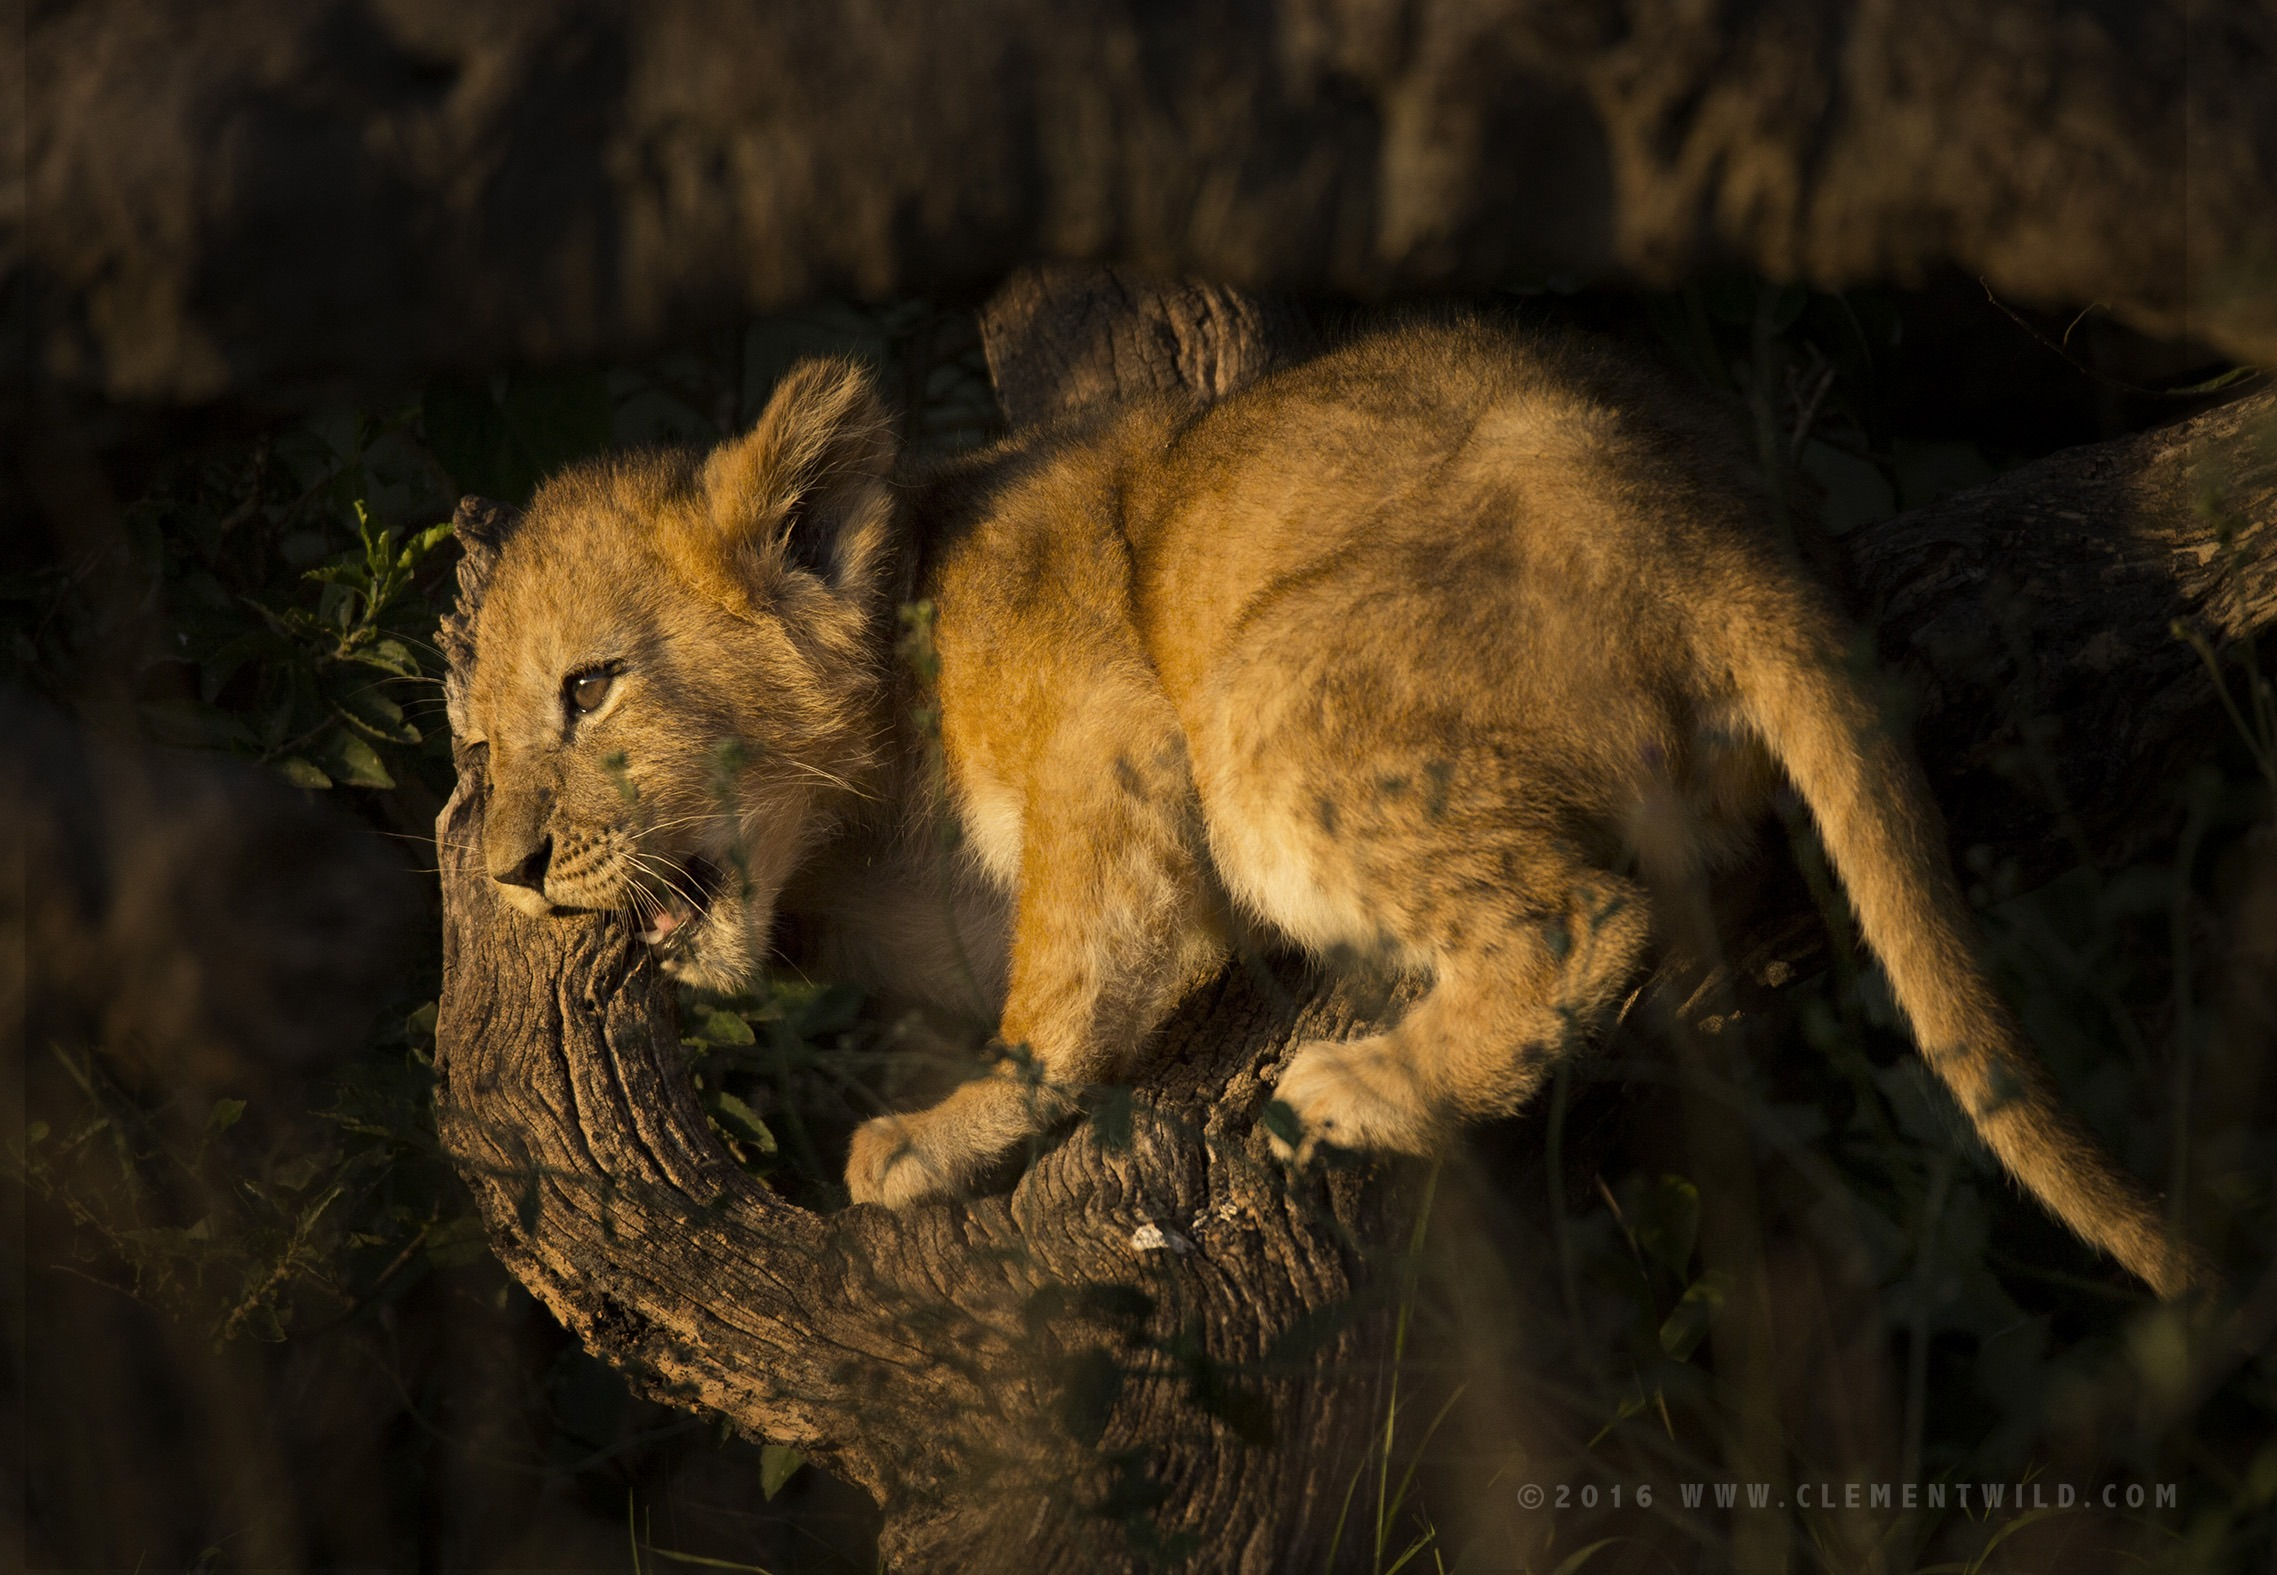 Big Cats, Cheetahs, Masai Mara, Kenya, Wildlife Photography, Photographic Safaris, Clement Wild